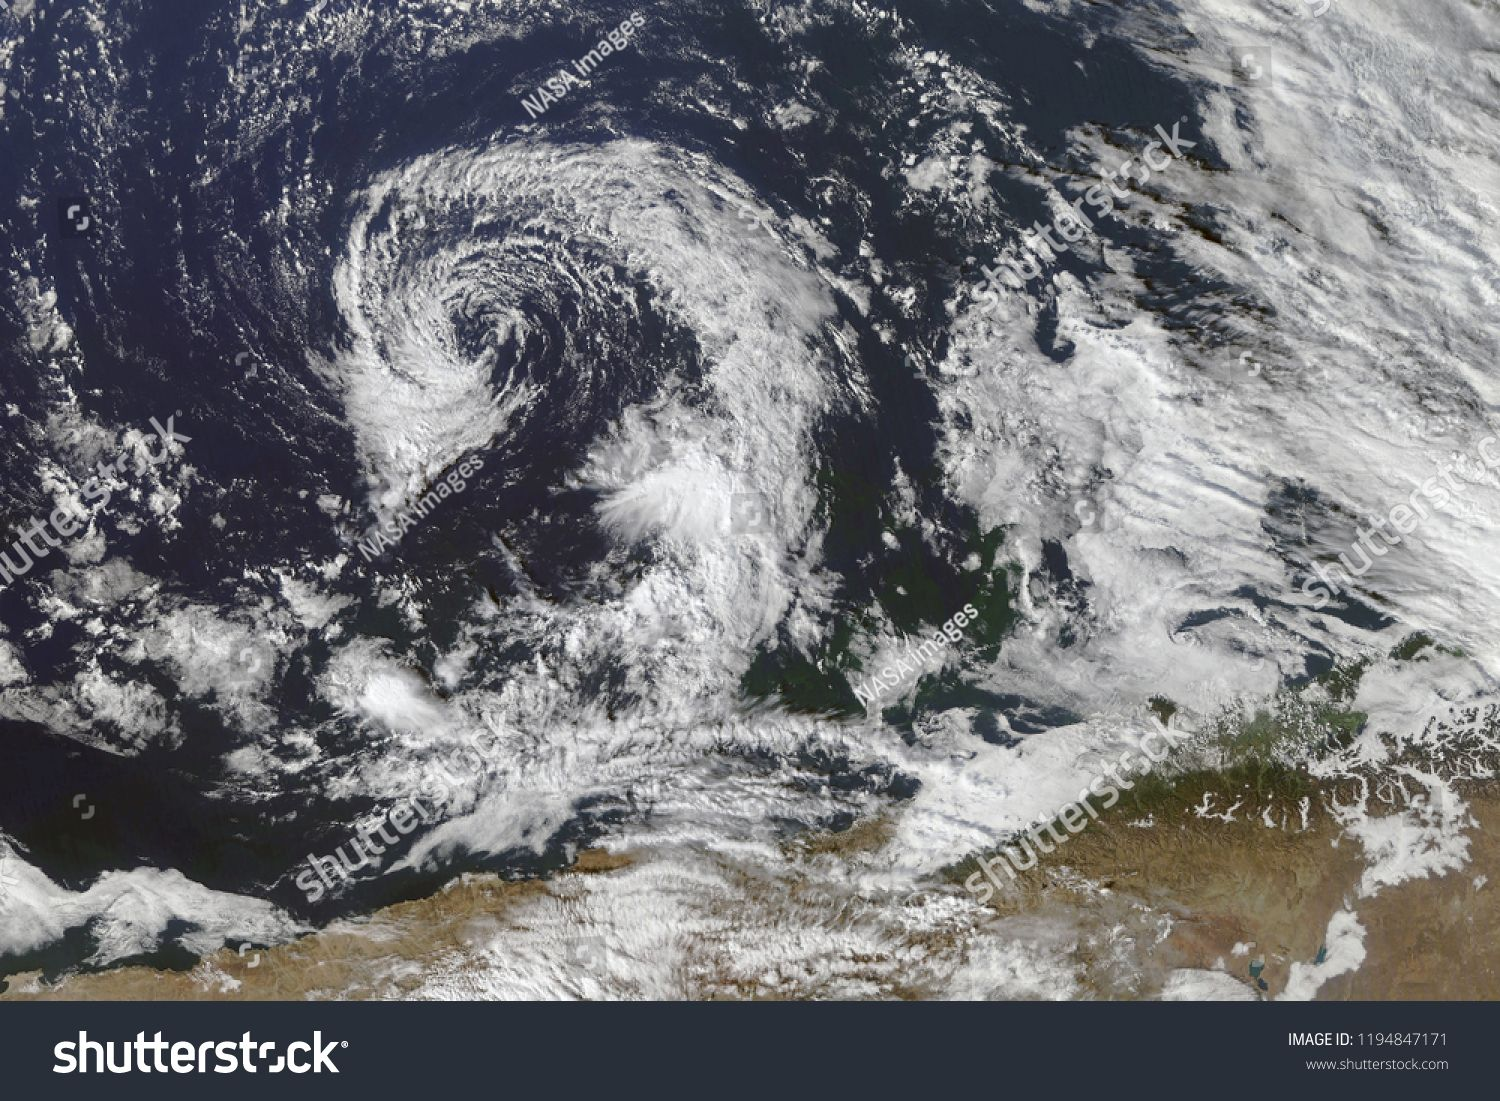 Hurricane From Space Satellite View Elements Of This Image Furnished By Nasasatellite View Hurricane Space Nasa Images Image Satellites